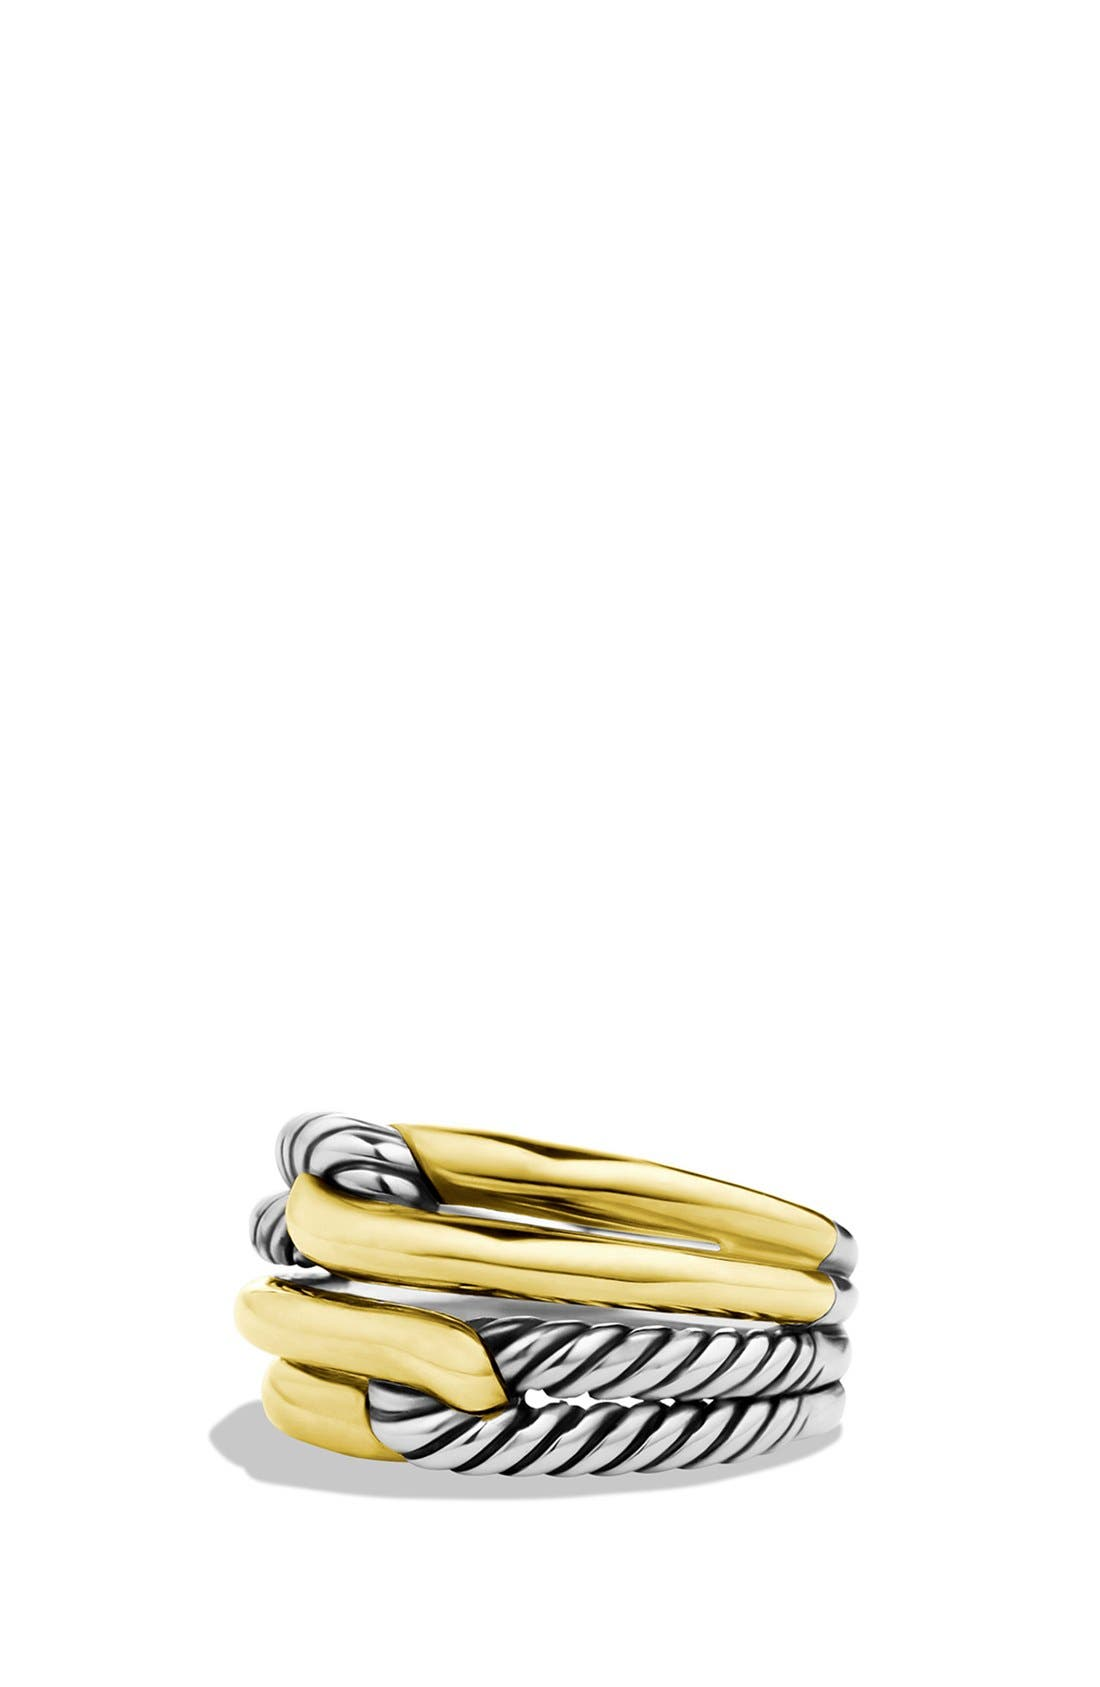 Alternate Image 1 Selected - David Yurman 'Labyrinth' Double-Loop Ring with Gold